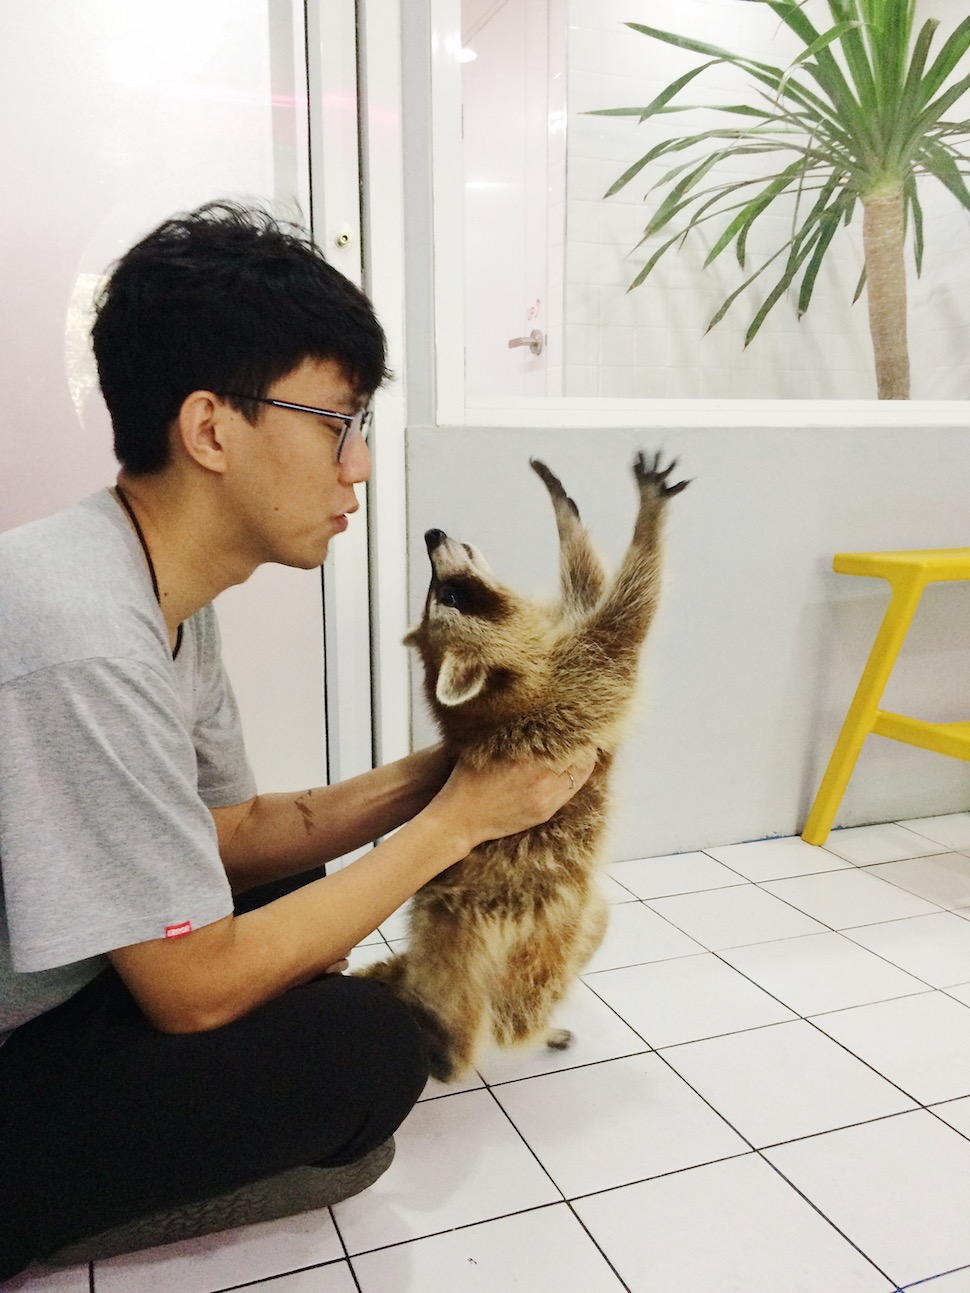 Pooltime Raccoon Cafe